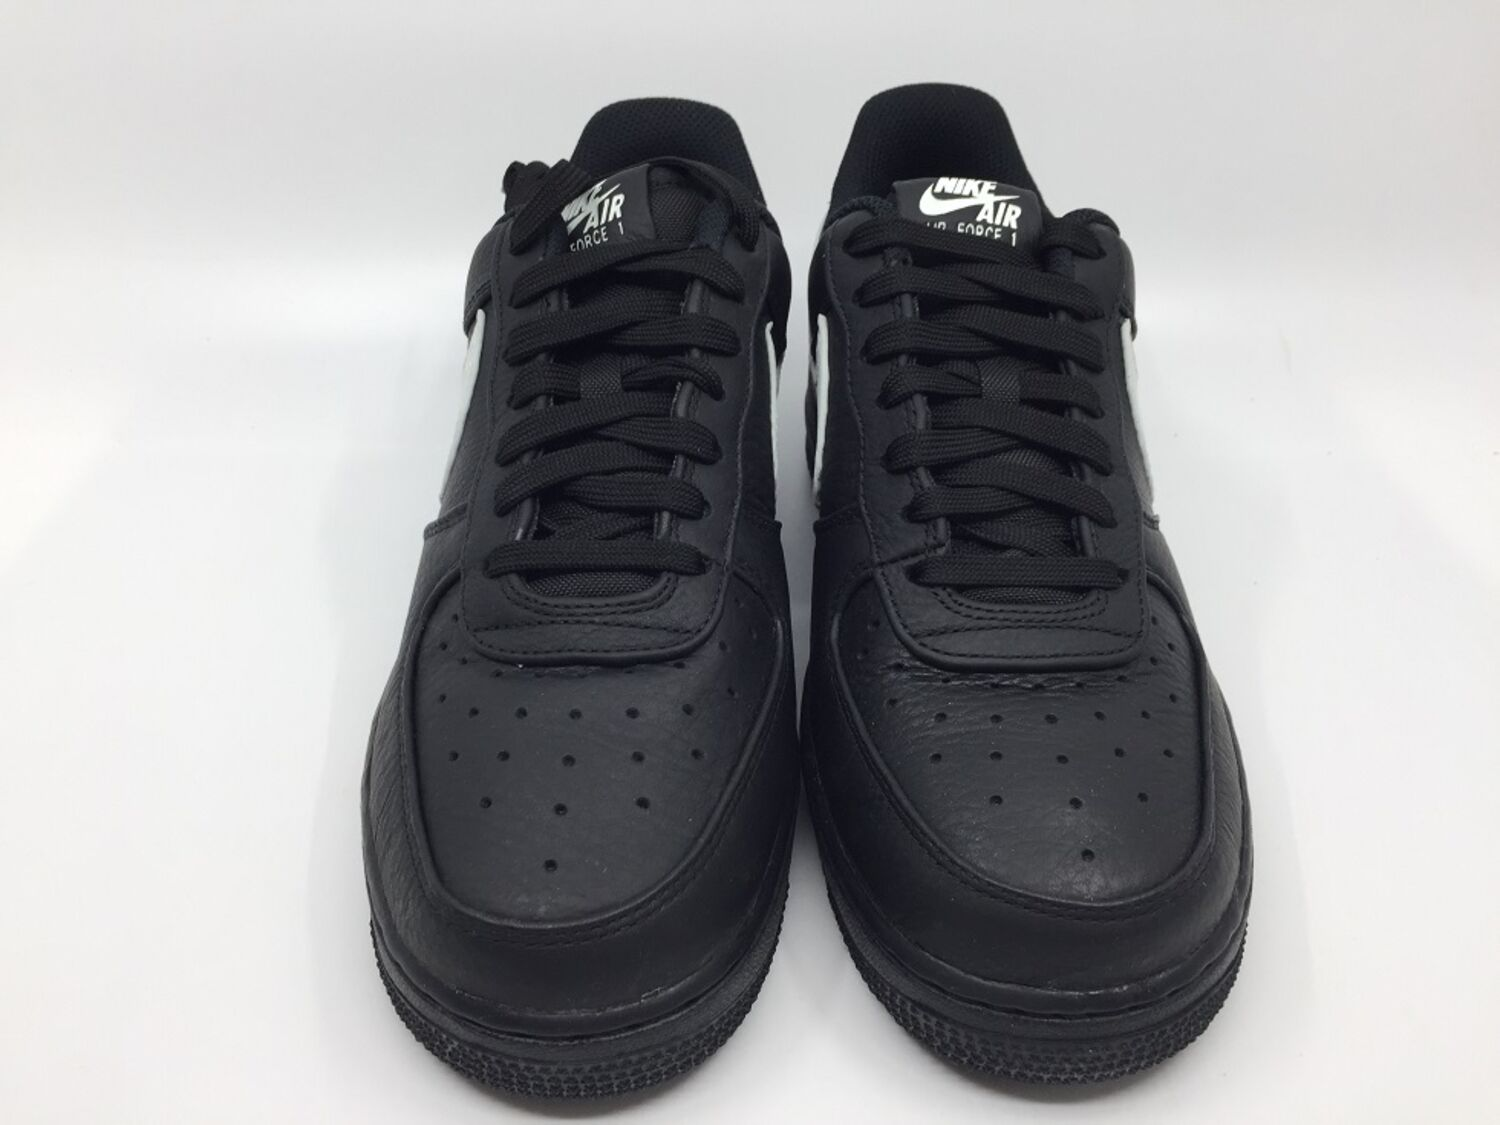 Herrenschuhe NIKE AIR FORCE 1 '07 PRM CI9353 001